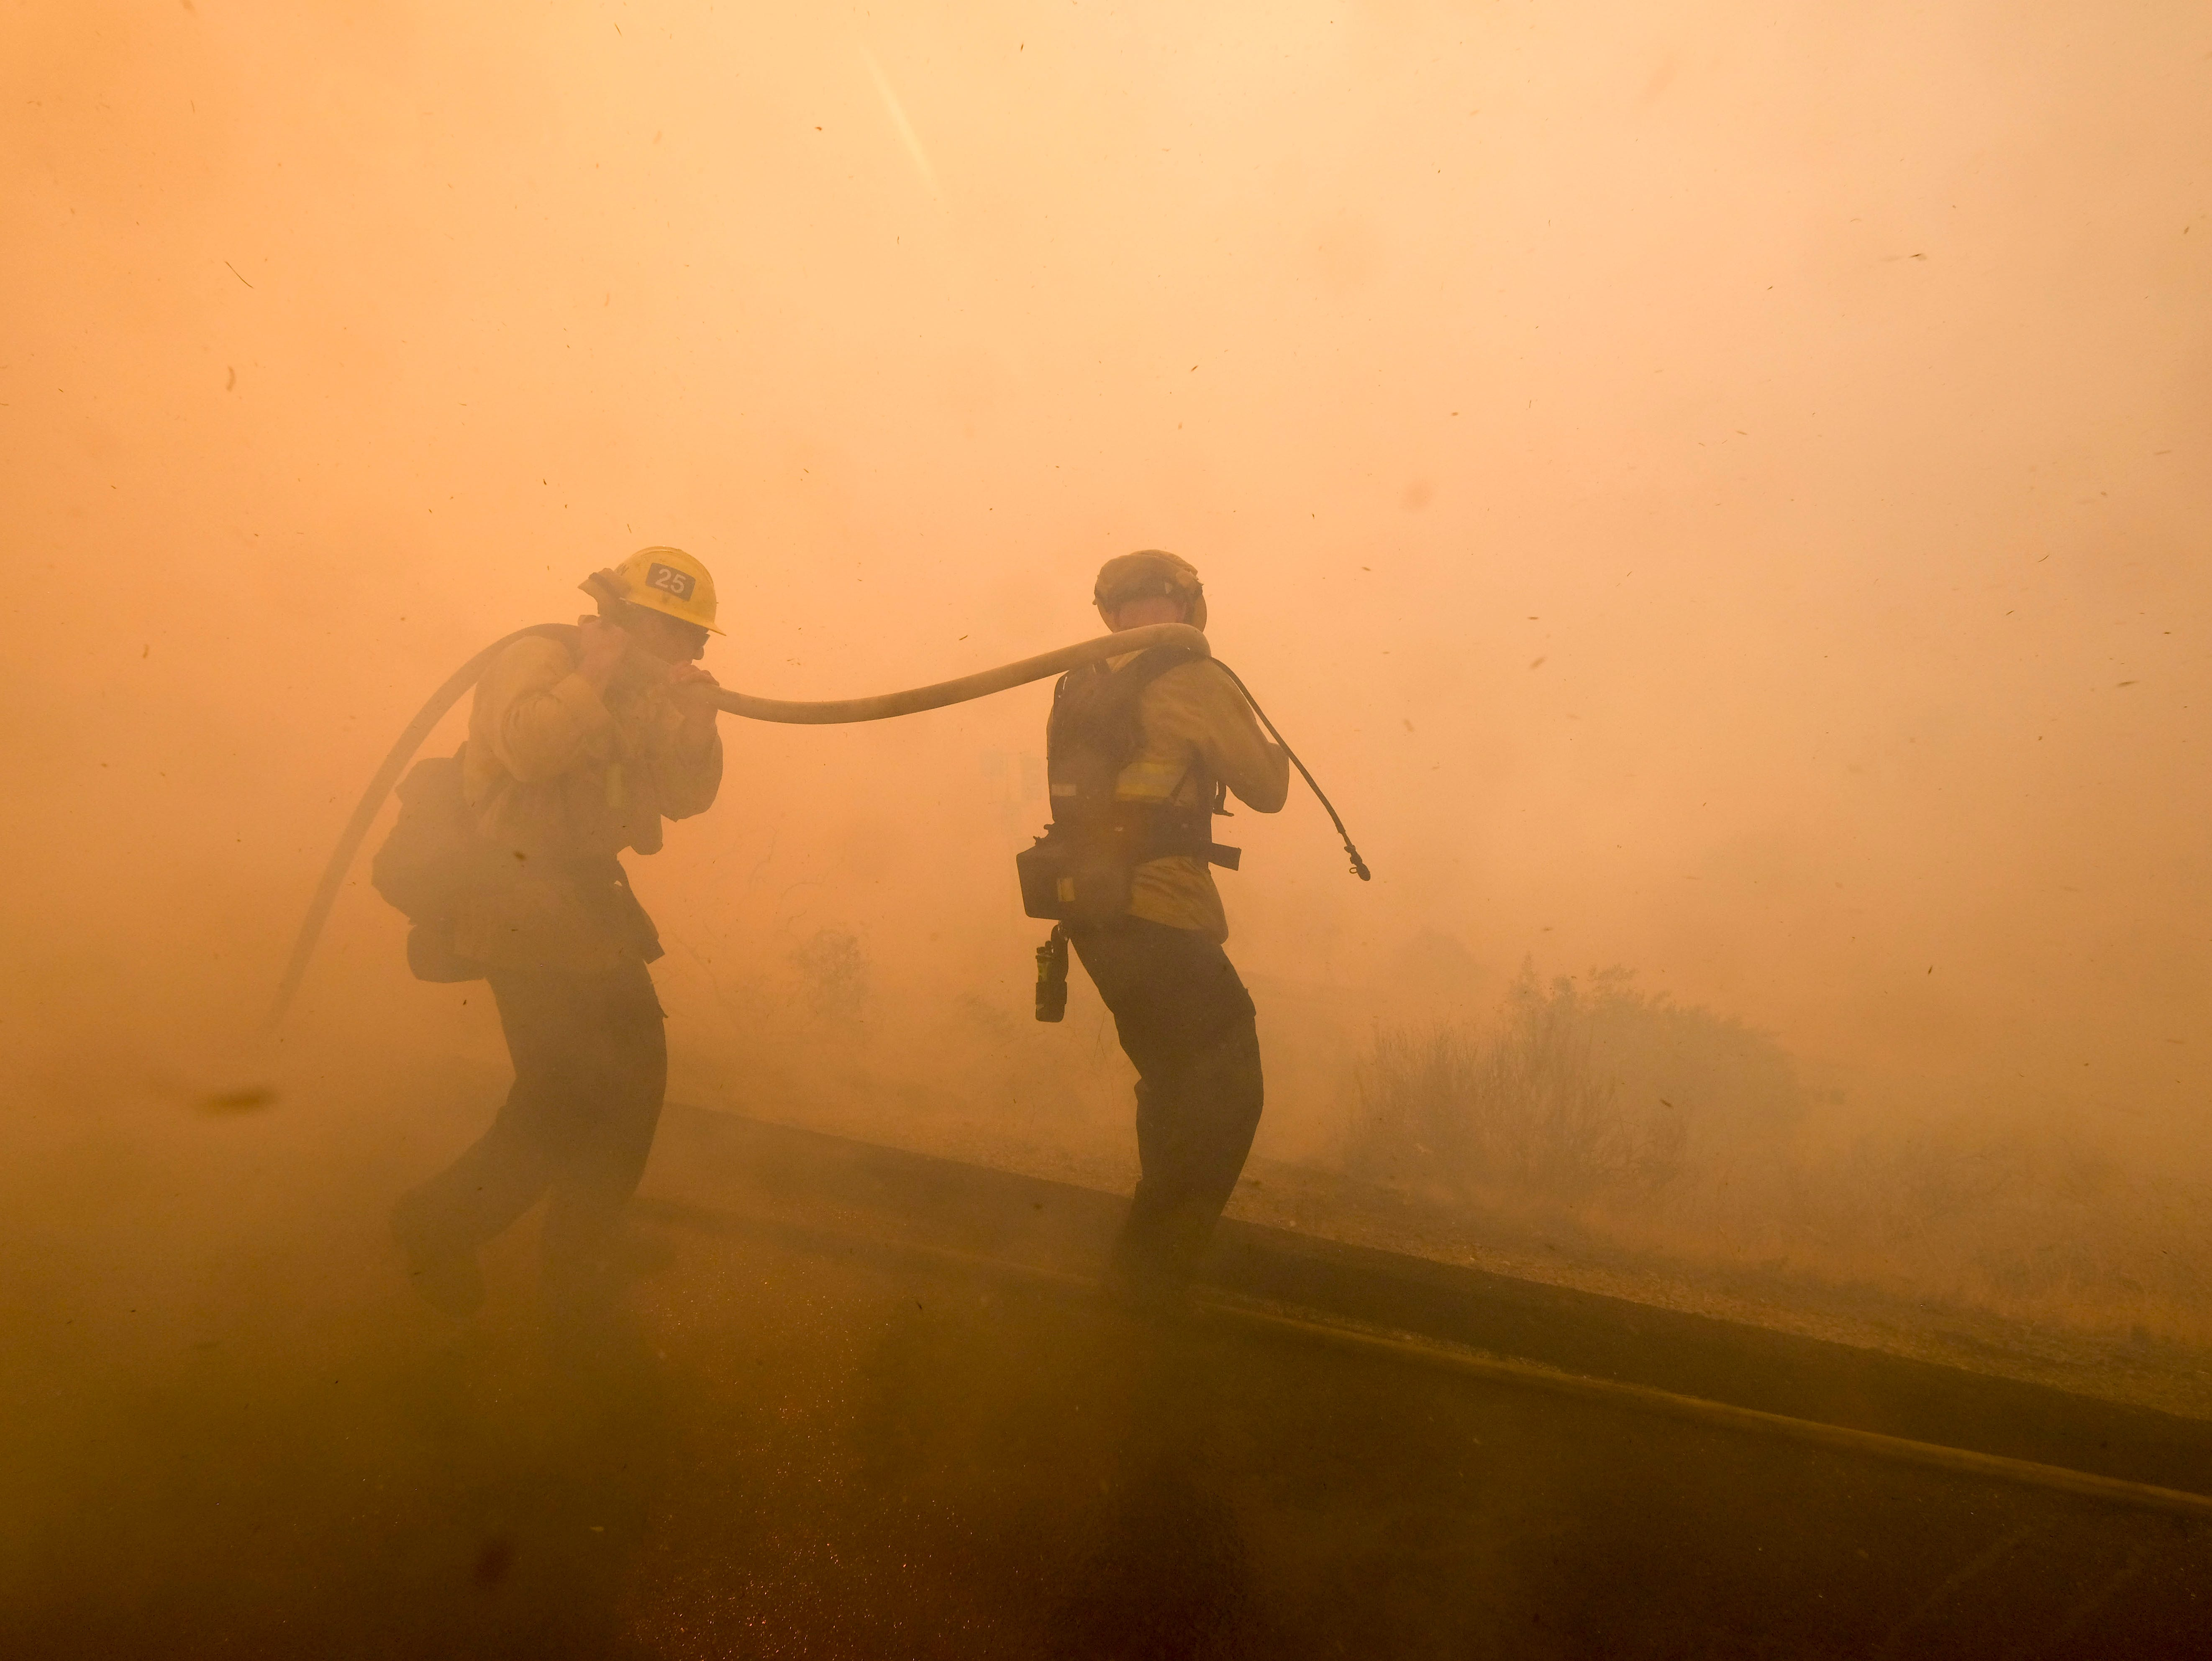 Firefighters battle a fire along the Ronald Reagan (118) Freeway in Simi Valley, Calif., Monday, Nov. 12, 2018.